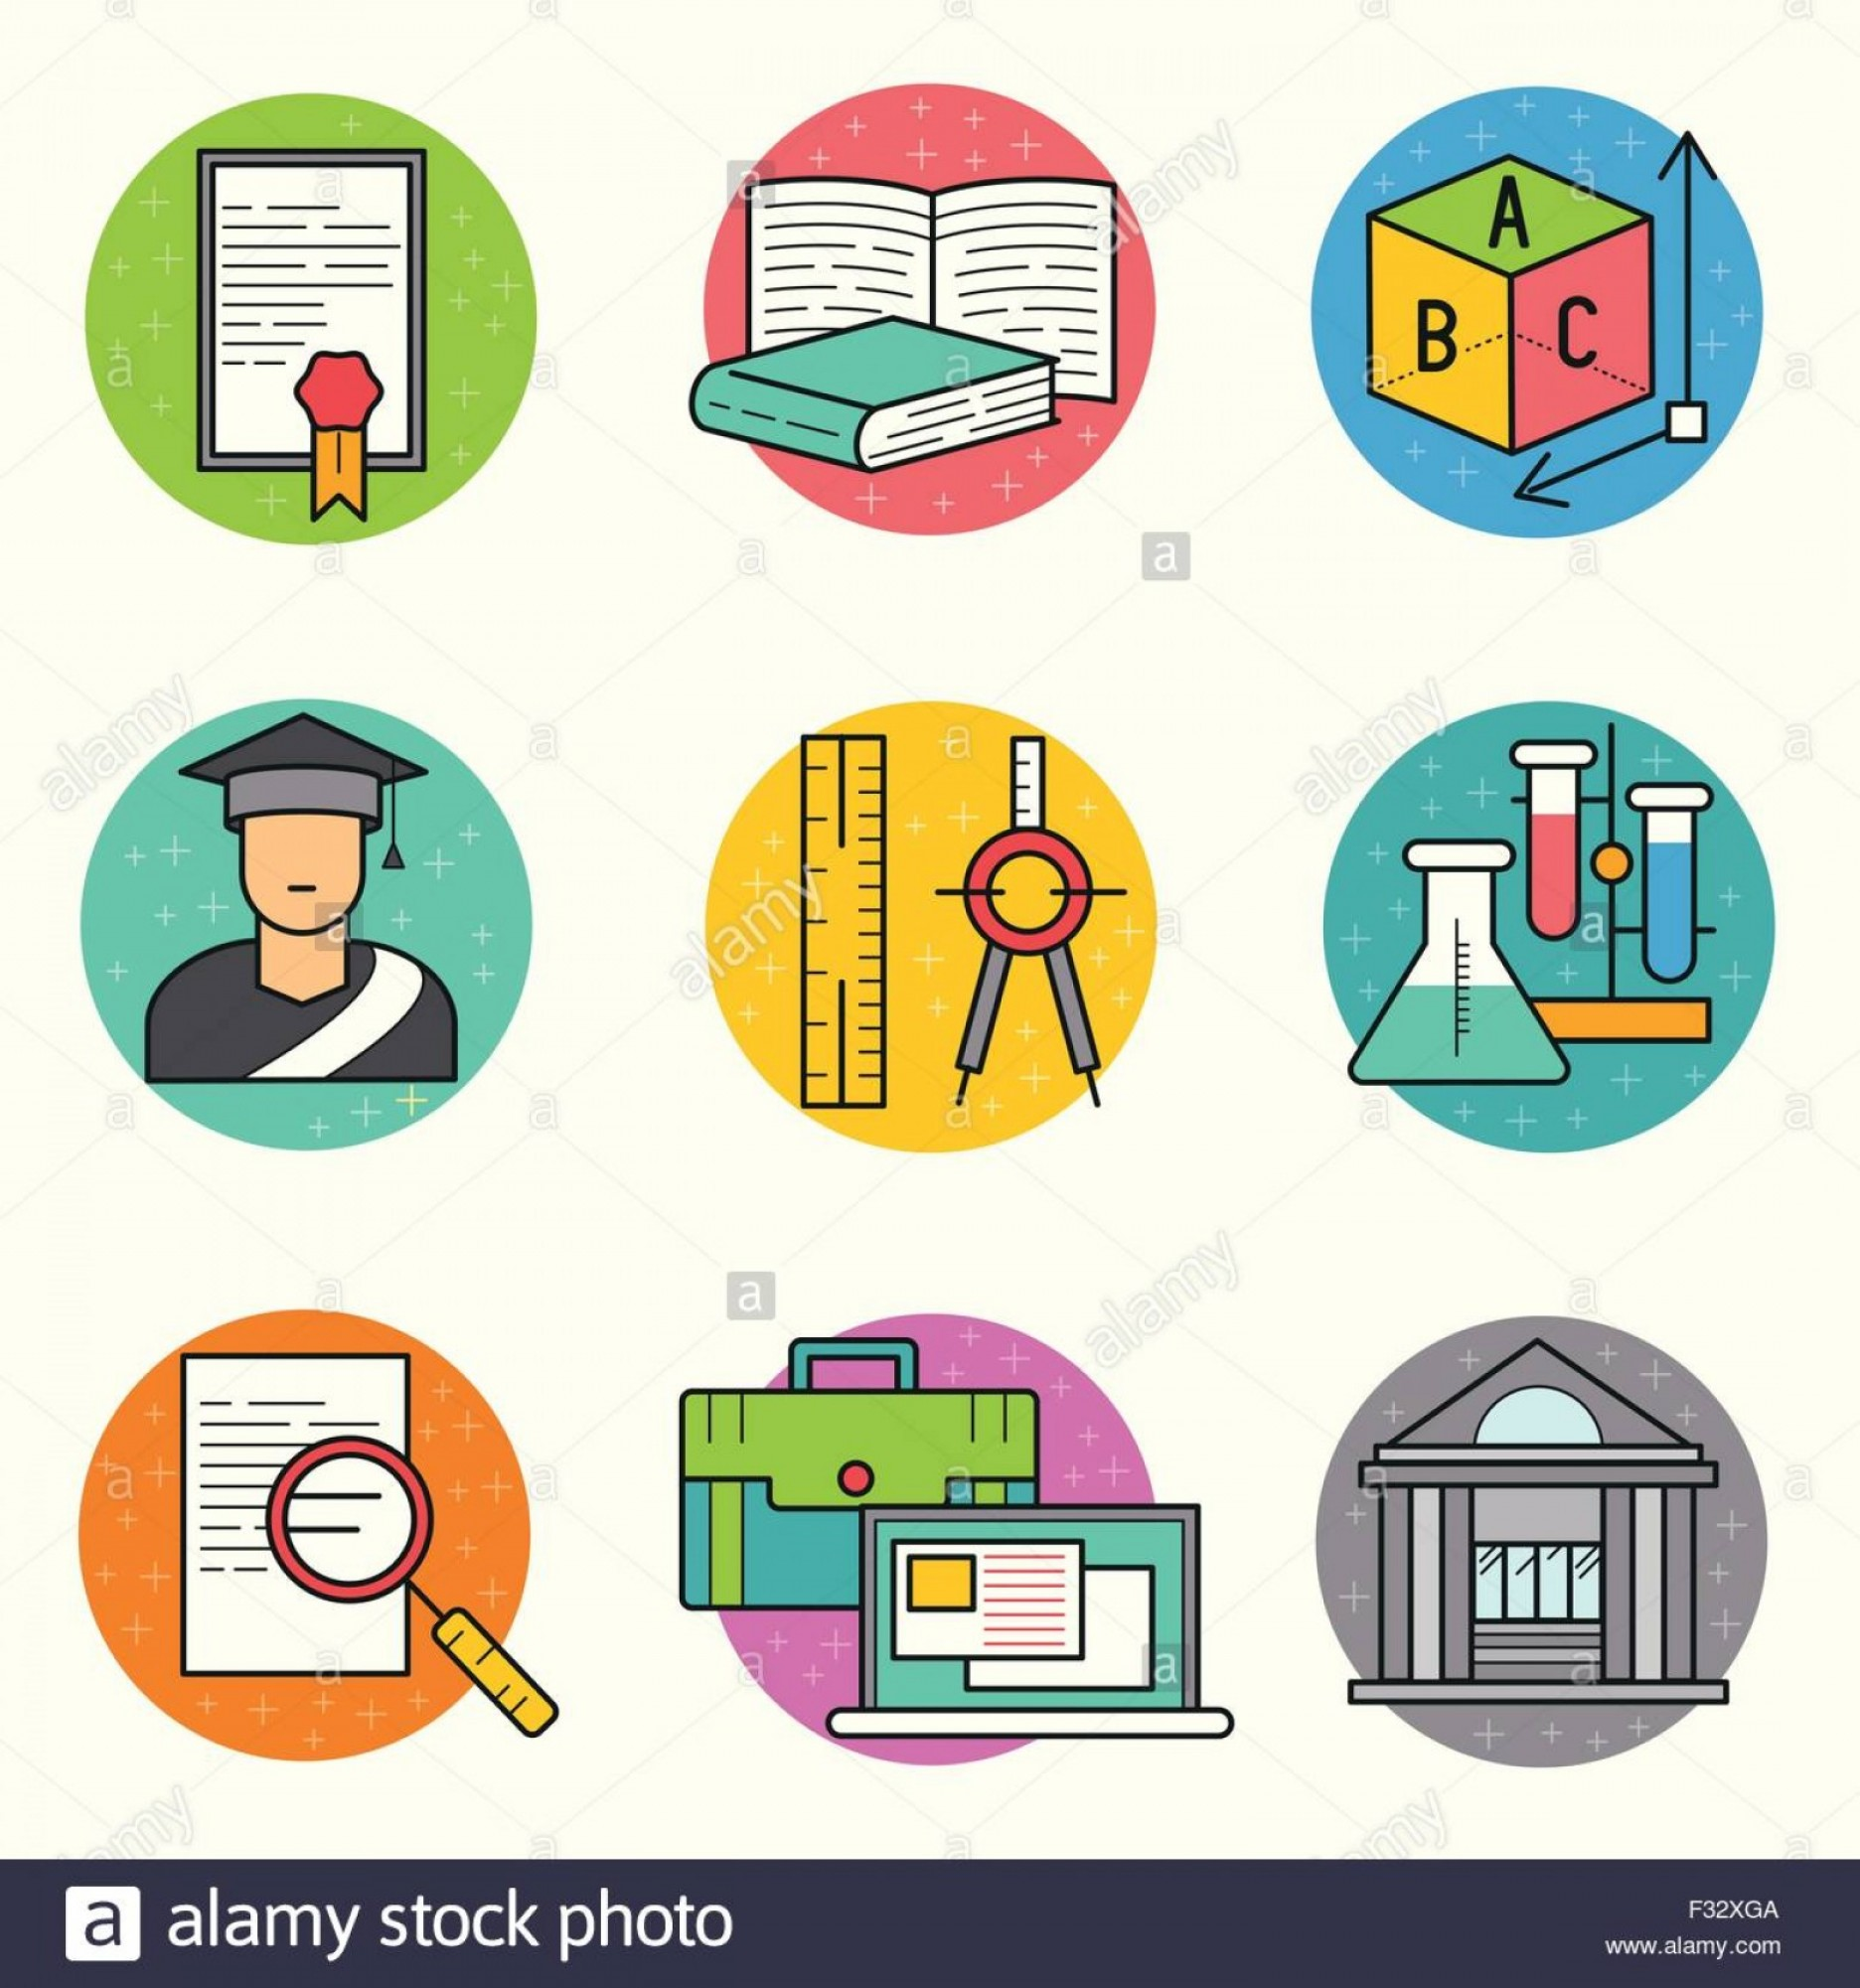 Dispicable Me Vectors House: Stock Photo Education Vector Icon Set A Collection Of Study And Research Symbols